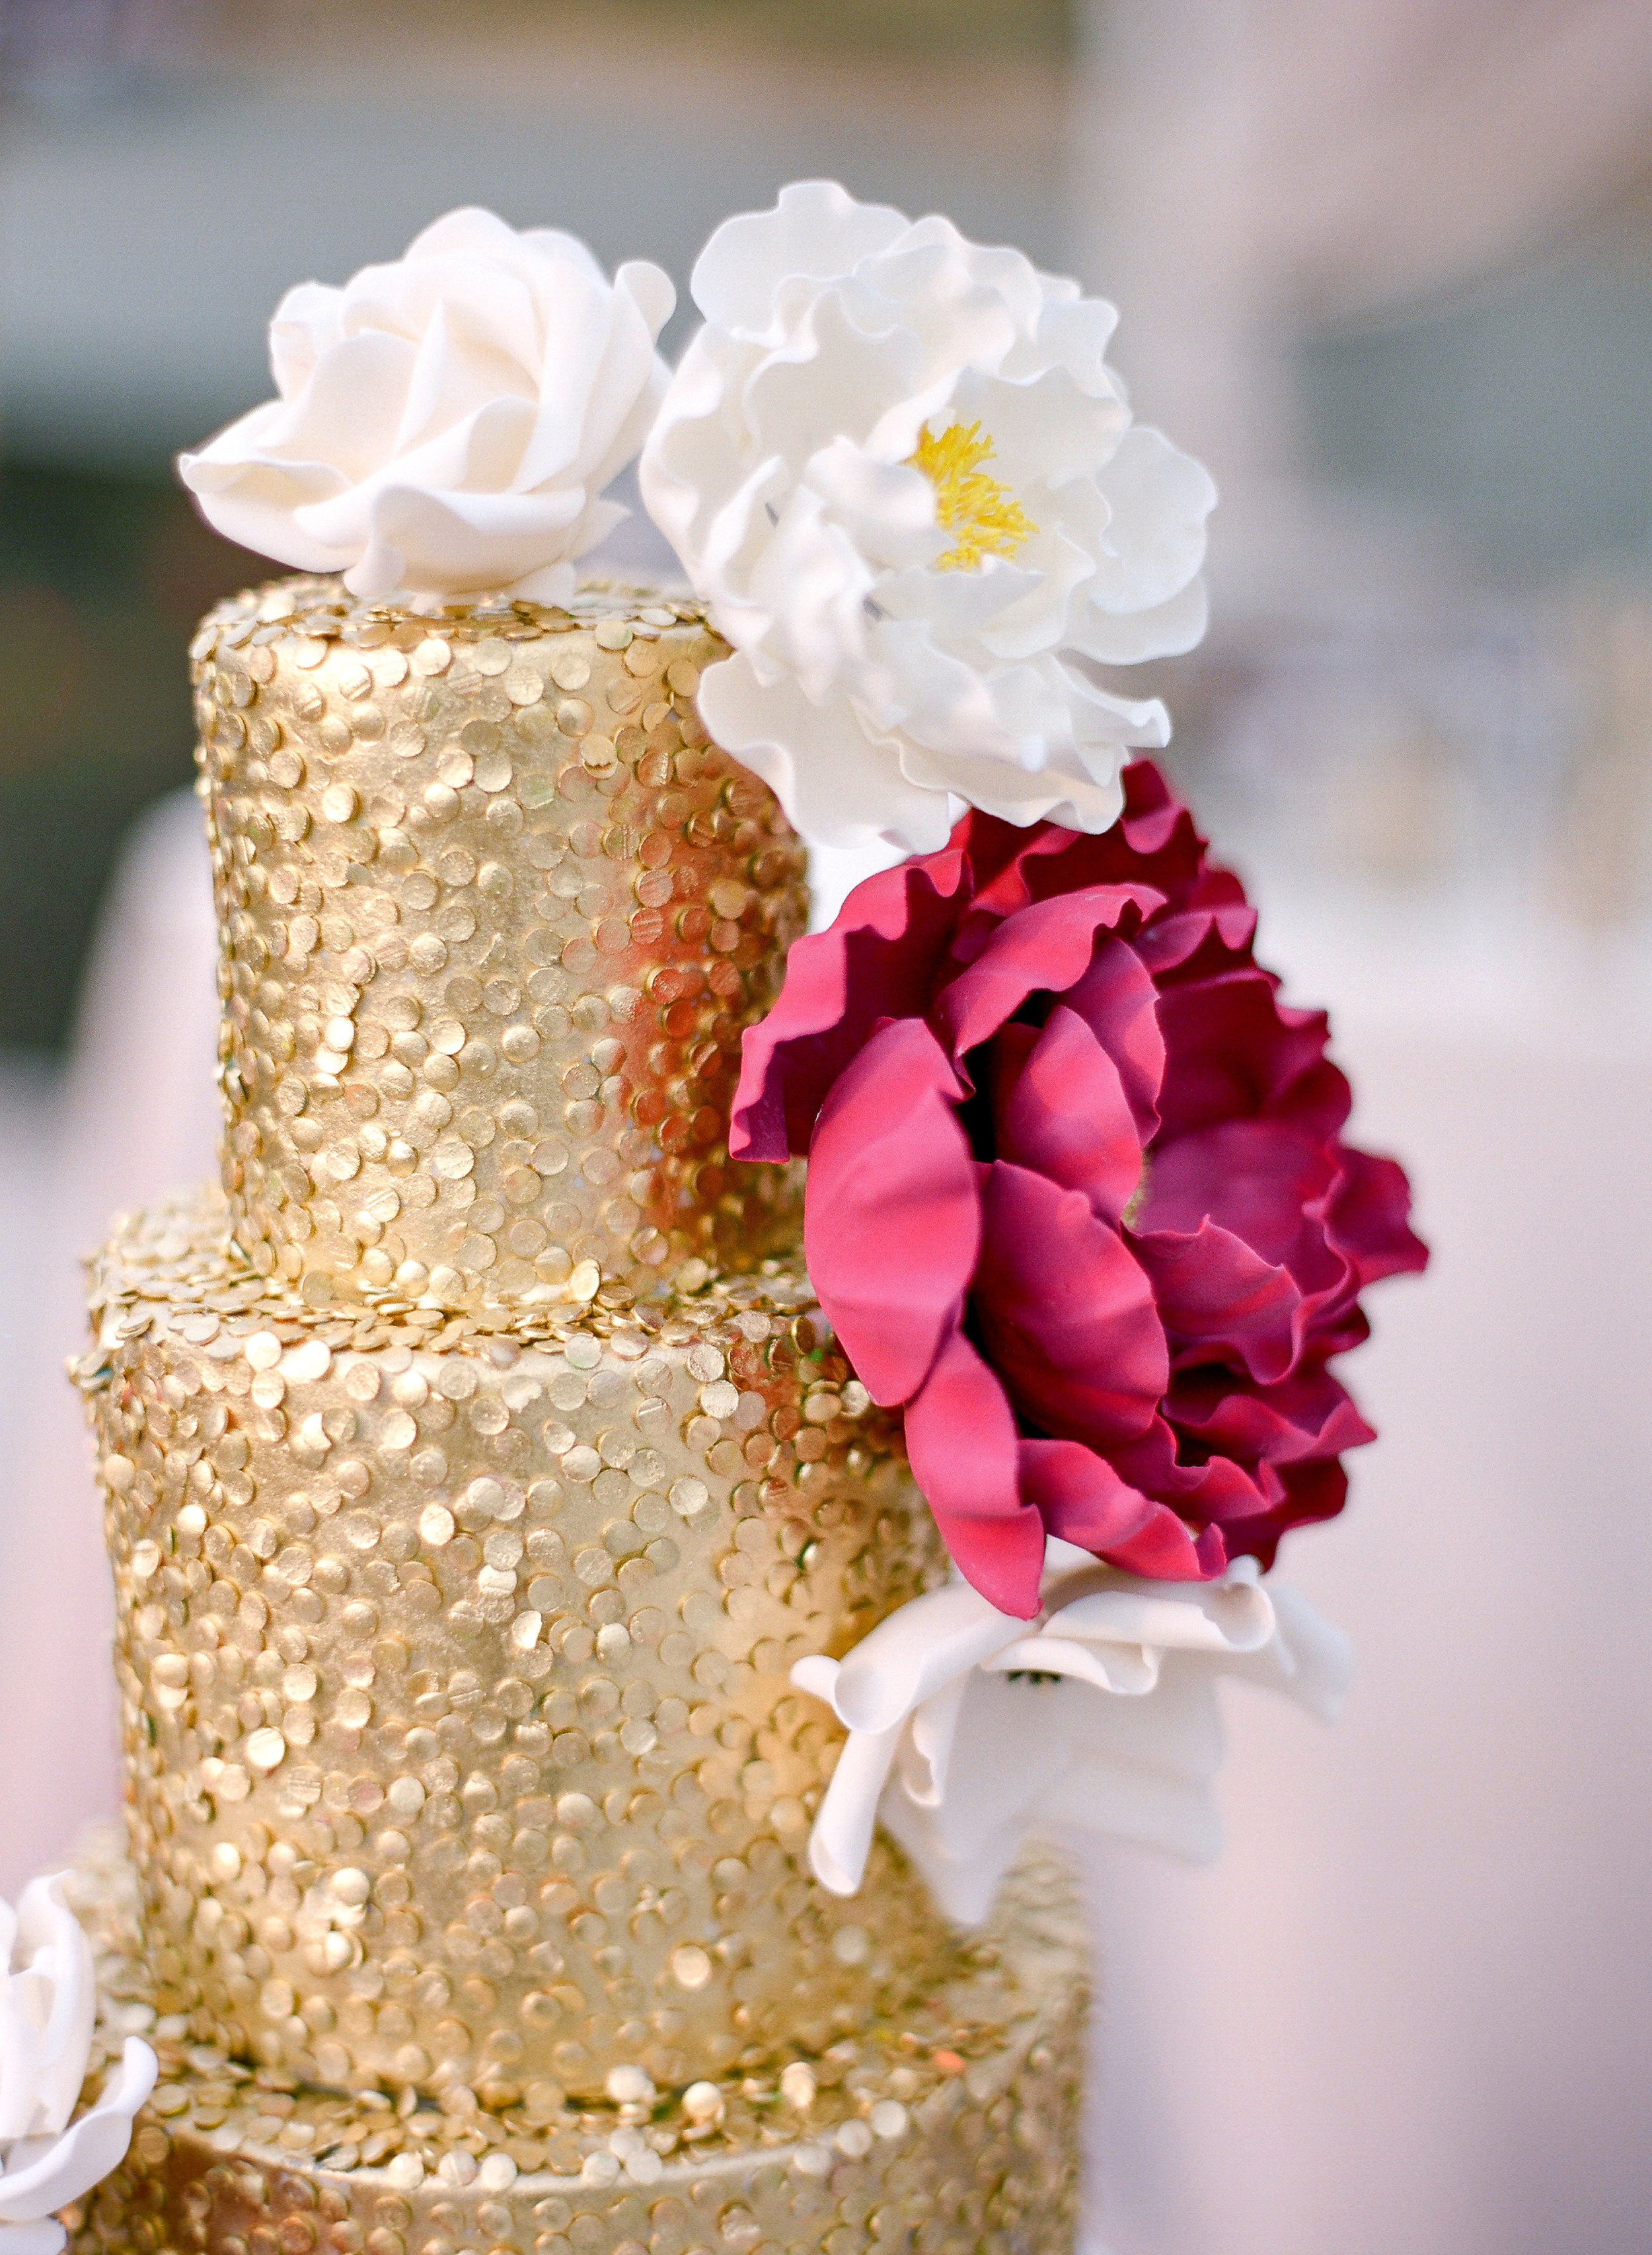 Amador_County_Wedding_Cake_Gold_Red_White_Flowers_Sparkles_Rancho_Victoria_Vineyard_Northern_California.jpg